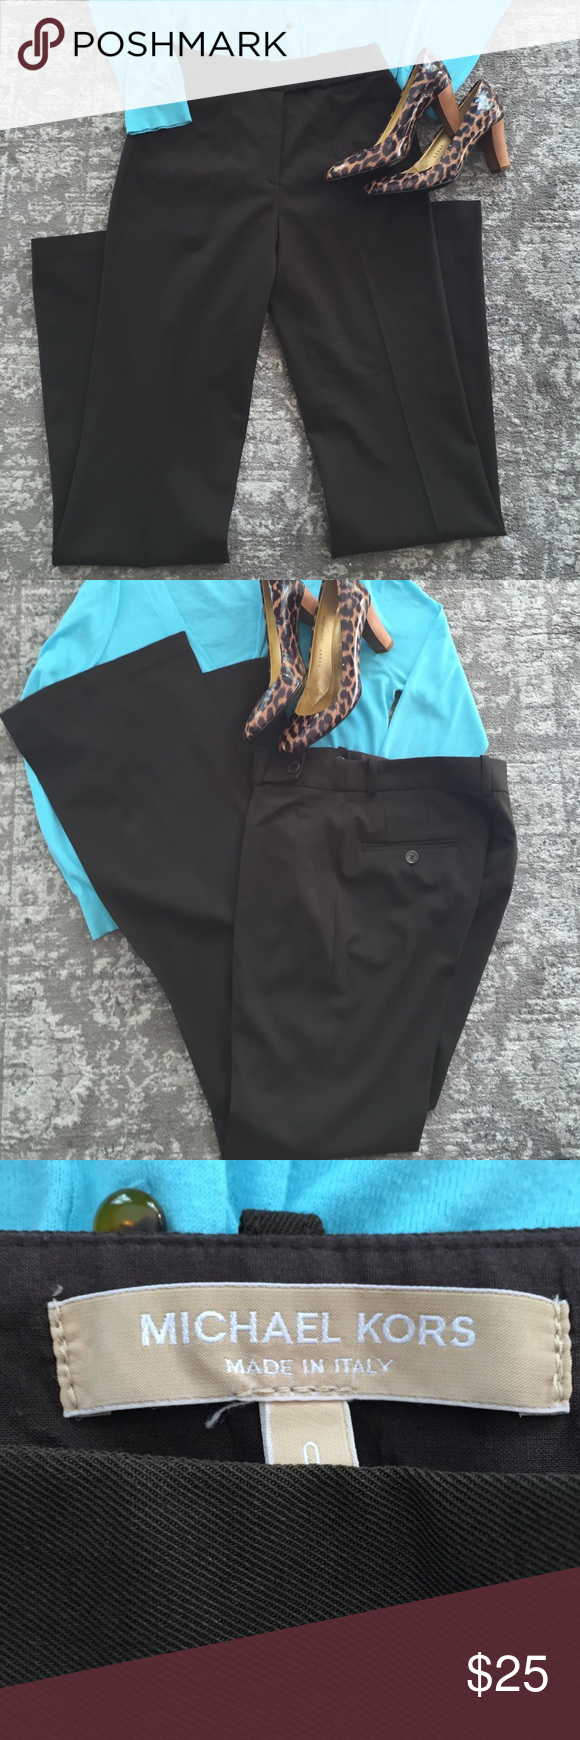 Michael Kors Trouser🌹 Perfect condition Michael Kors trouser. Waist 26 inches, rise approx 9 1/2 inches inseam 32 1/2 inches Flare width at hem 9 inches Michael Kors Pants Trousers